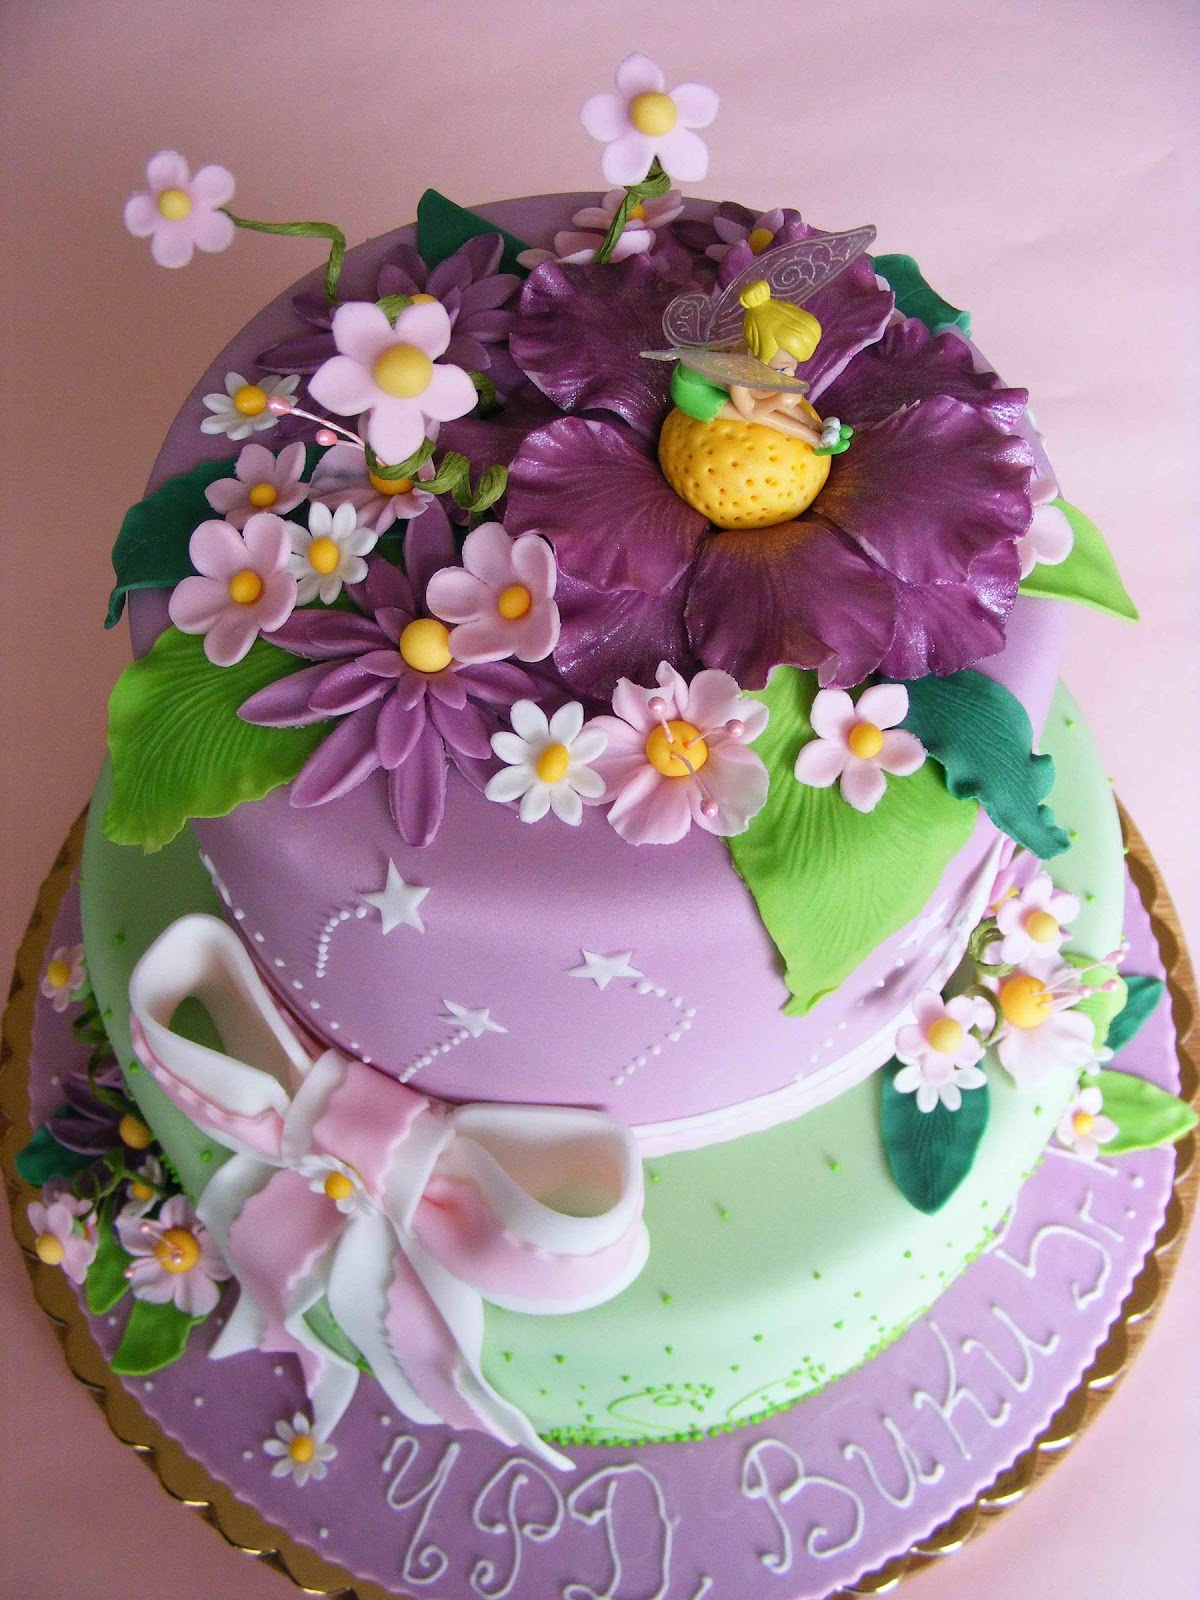 Beautiful Birthday Cake Images In Hd : Bubolinkata: ????? ? ??????